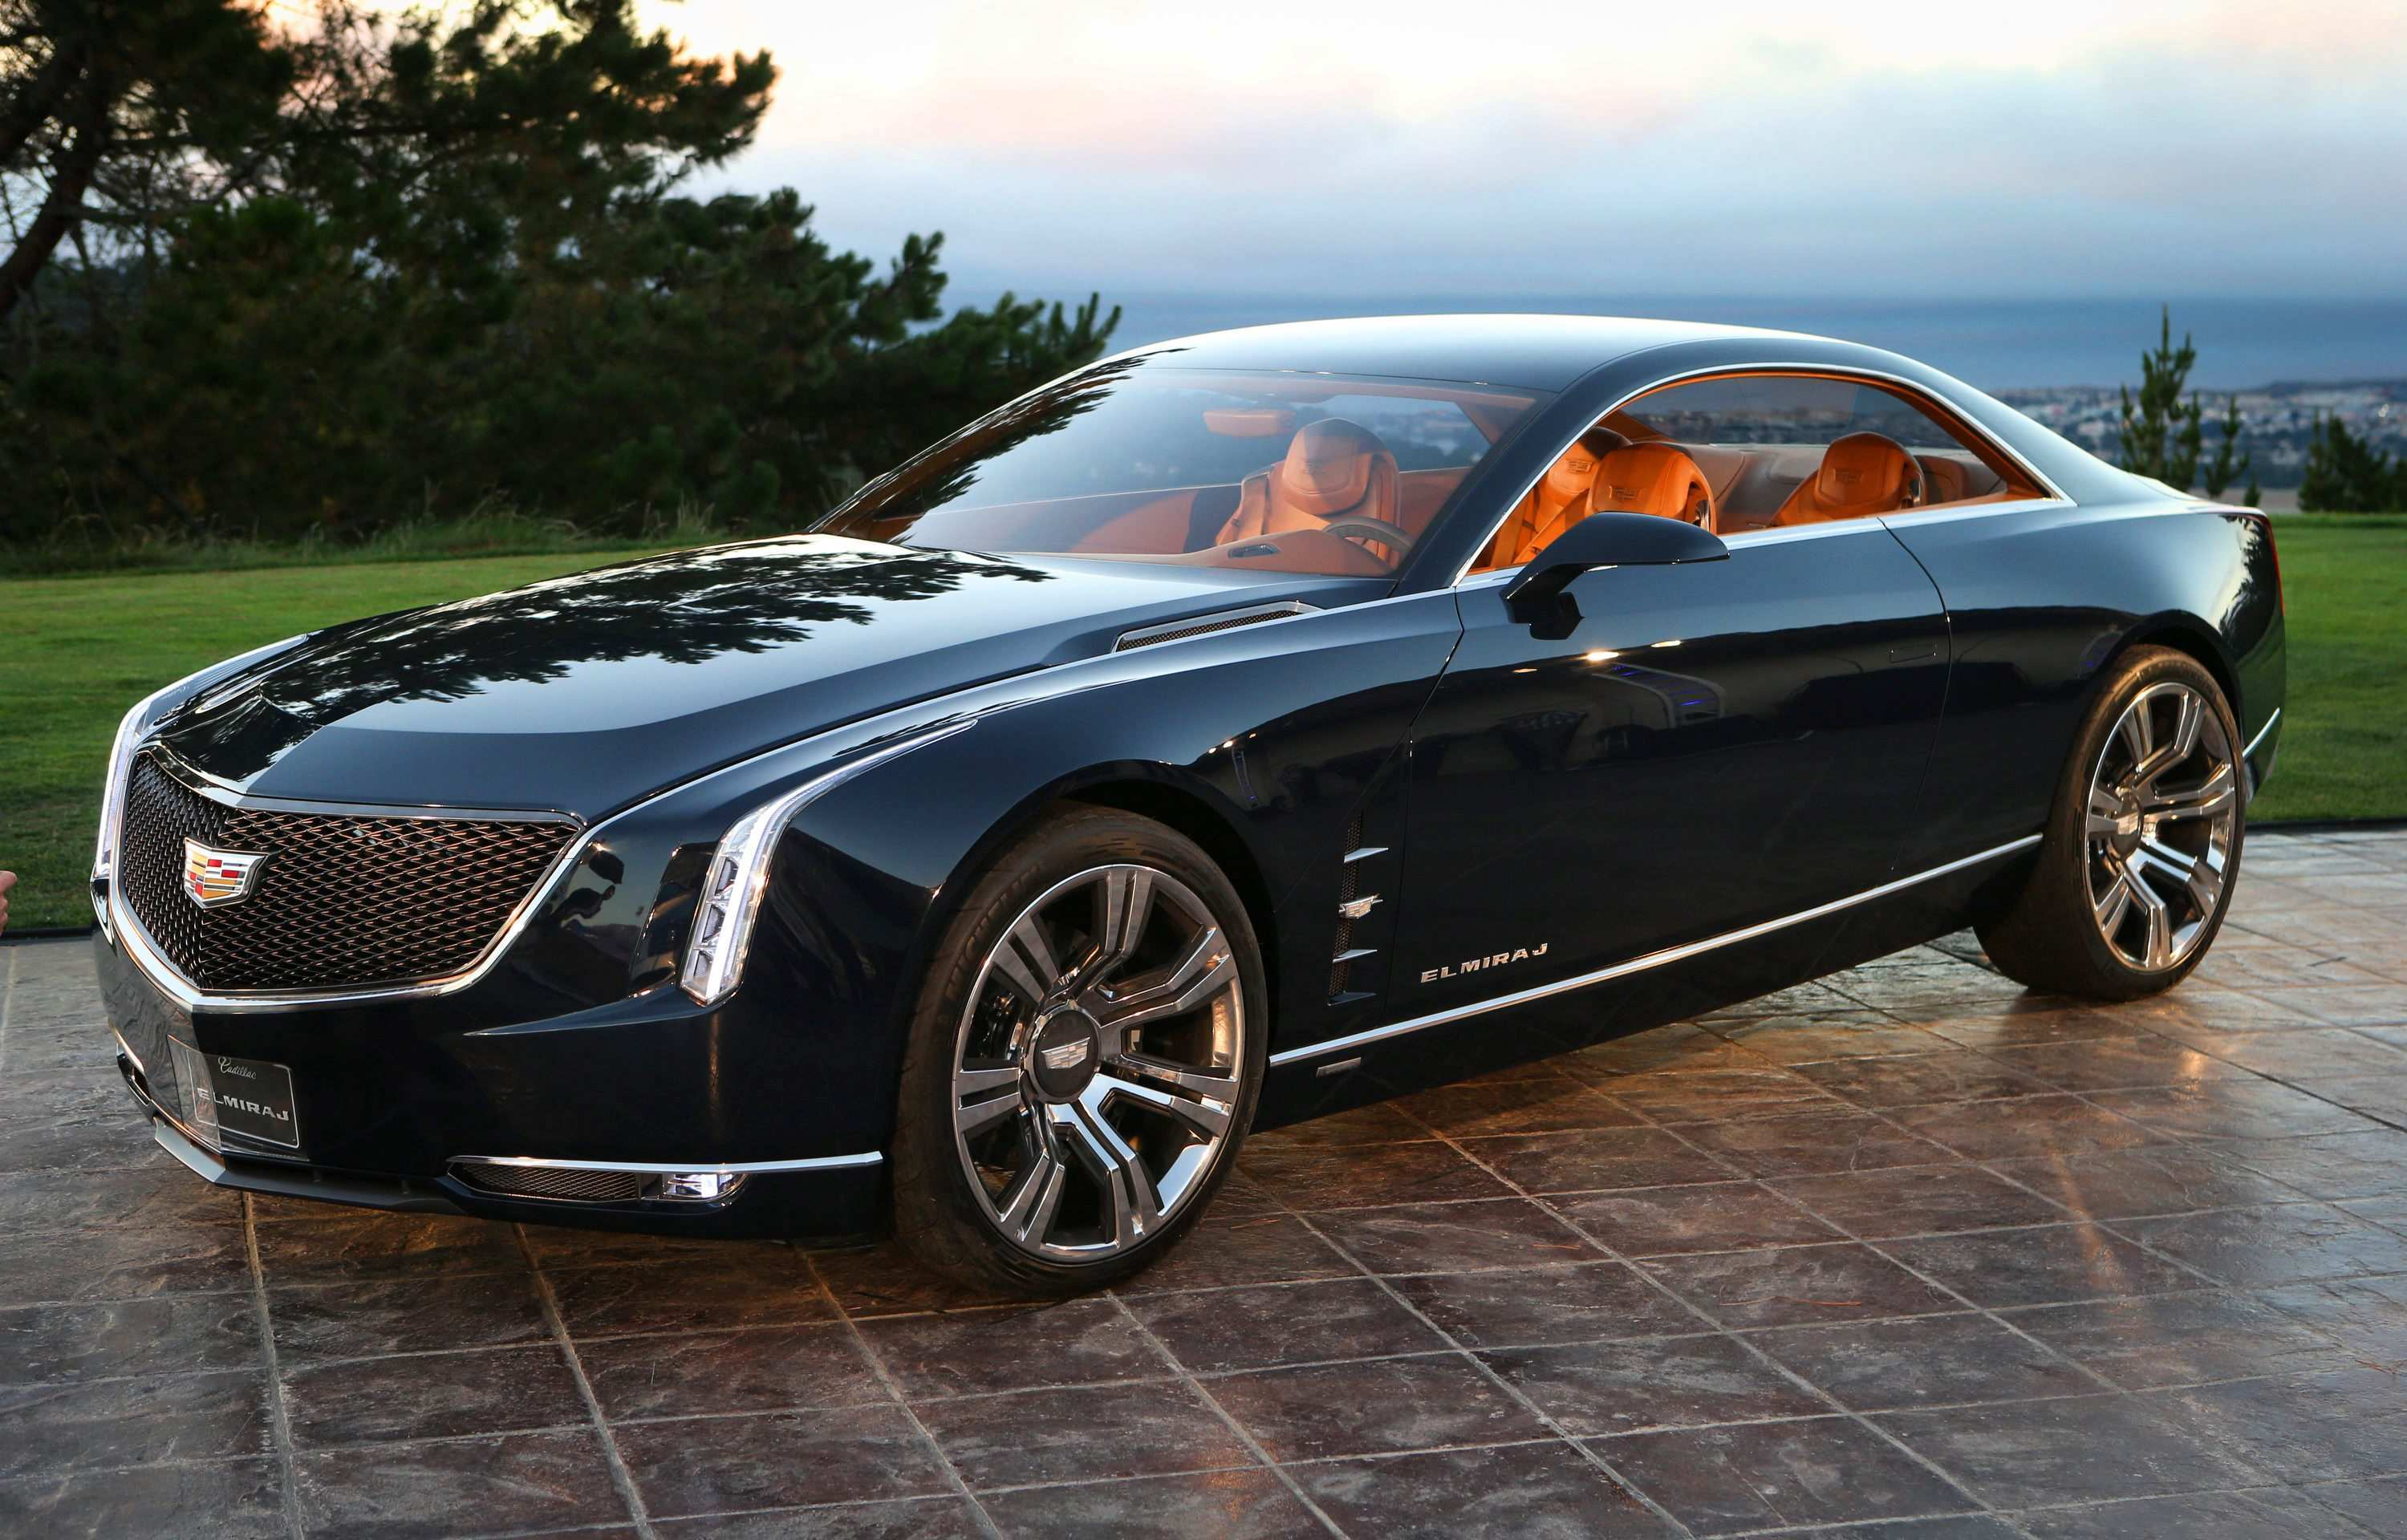 43 New Cadillac Xlr 2020 Pictures